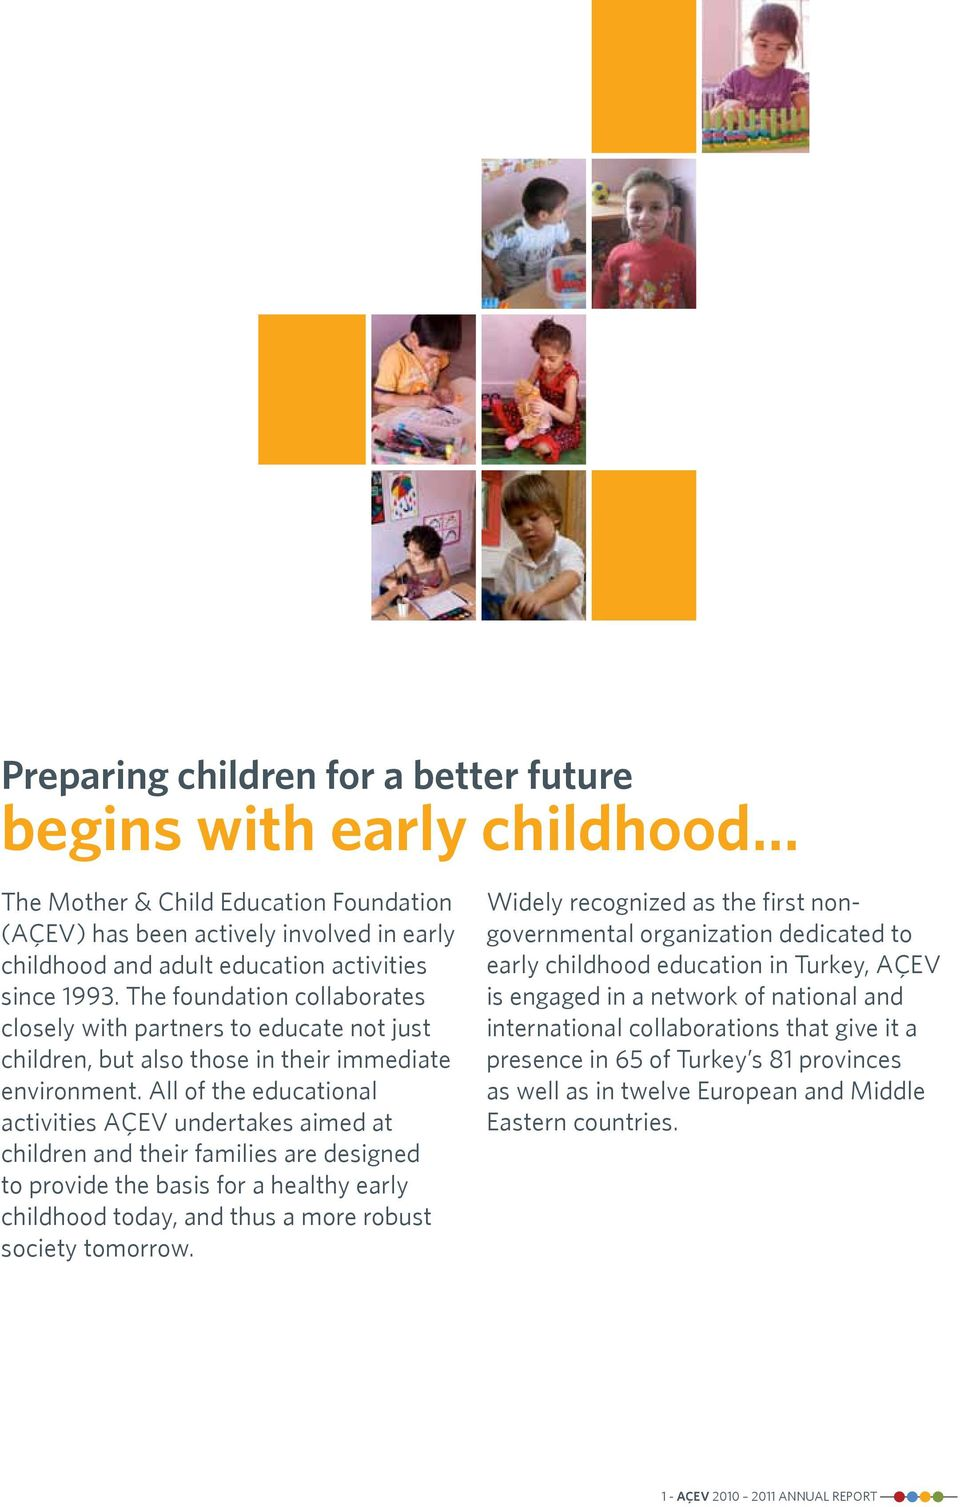 All of the educational activities AÇEV undertakes aimed at children and their families are designed to provide the basis for a healthy early childhood today, and thus a more robust society tomorrow.